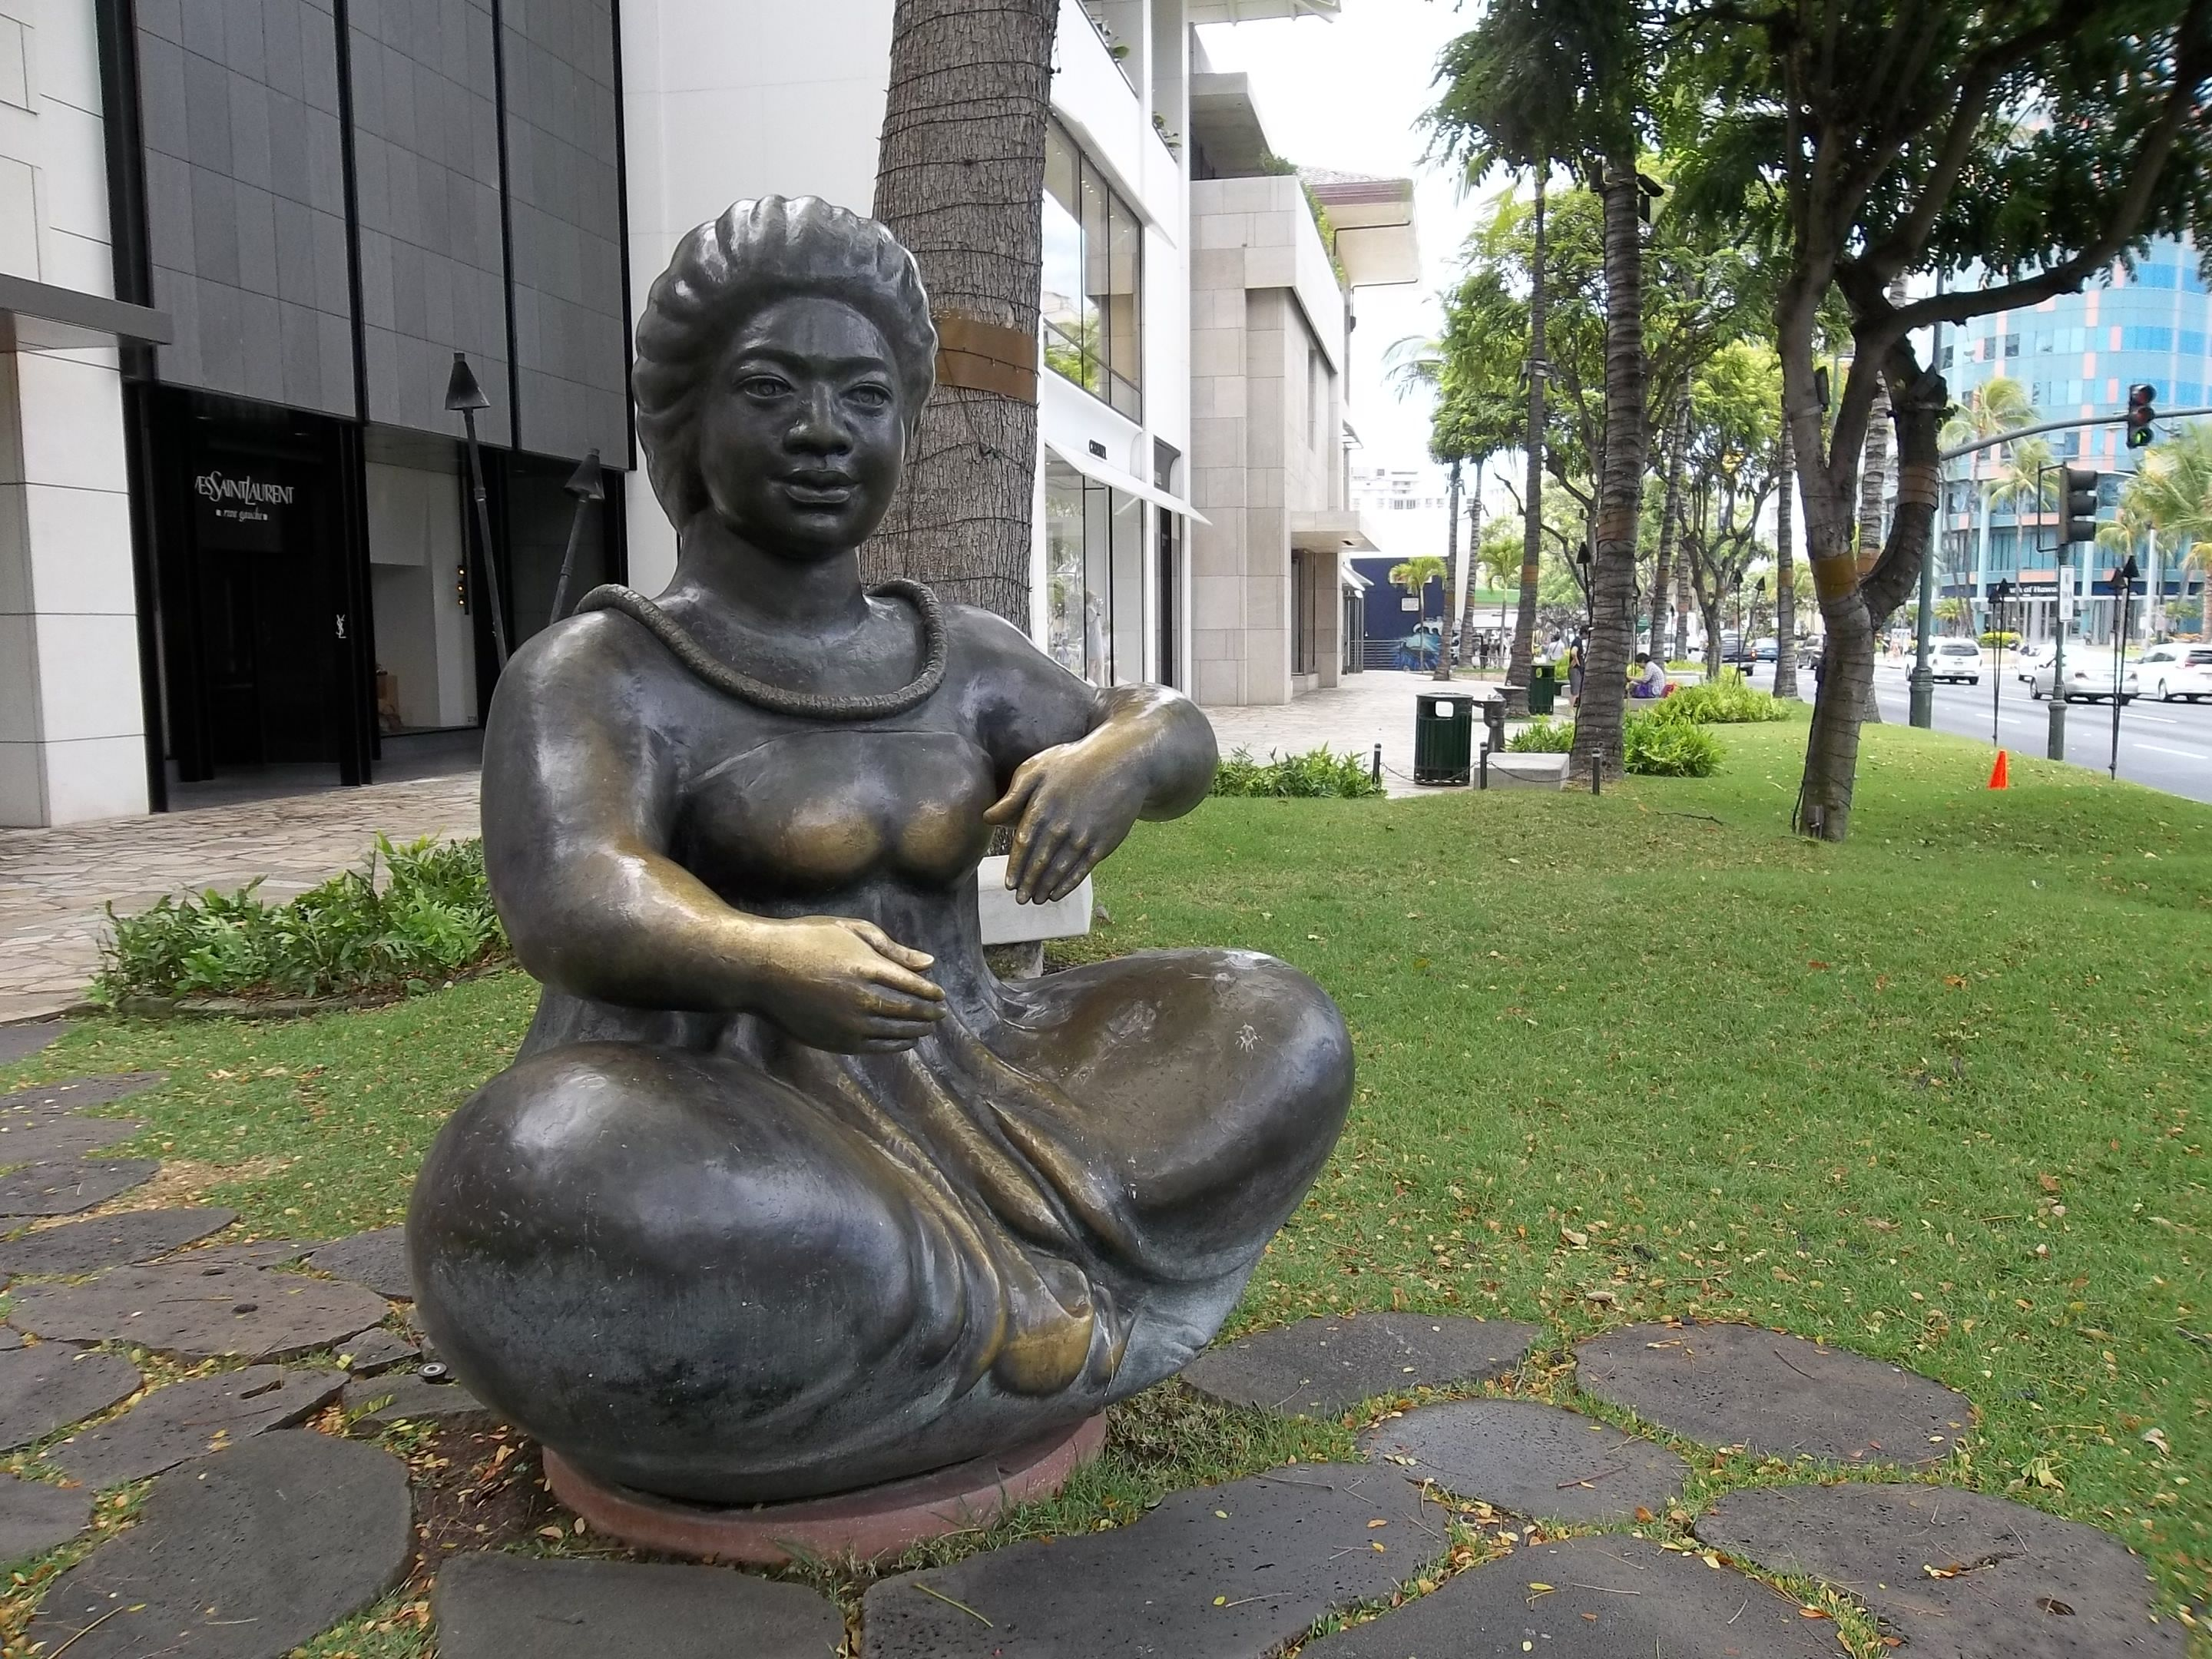 This statue is called